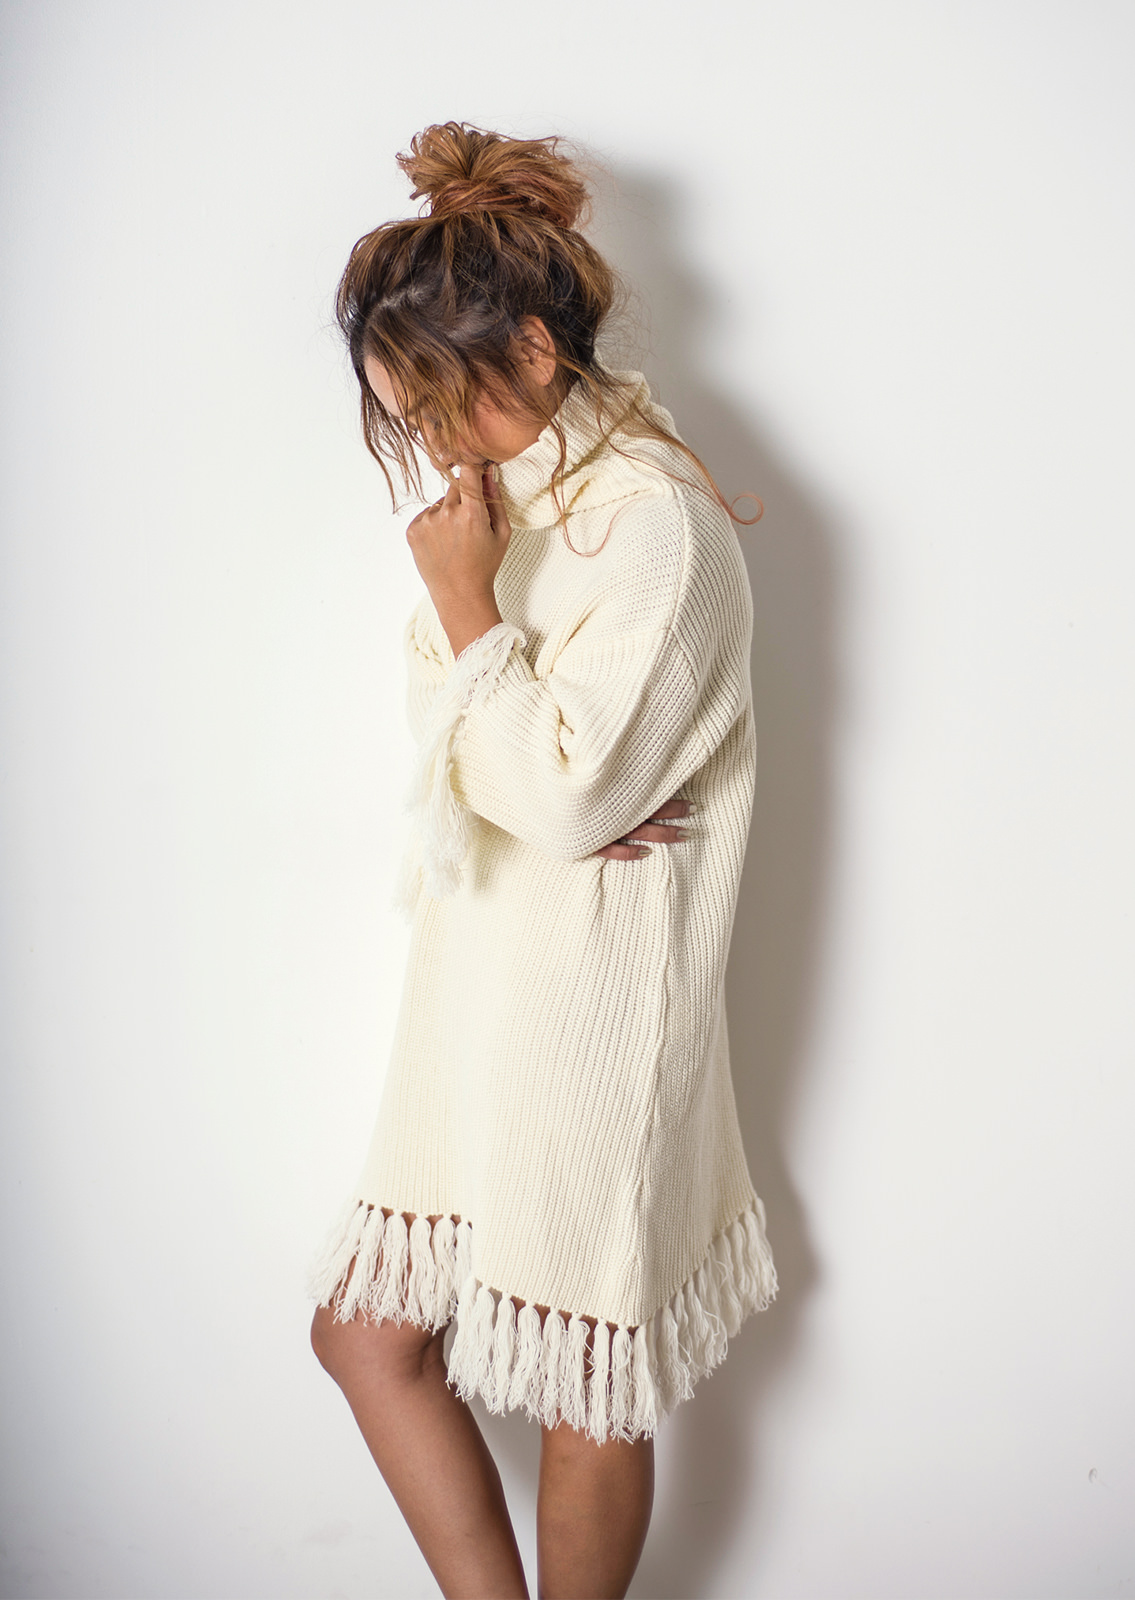 DG71AW017 FRINGE KNIT ONE PIECE COLOR: O.WHT, CHA, ORG 12,000yen